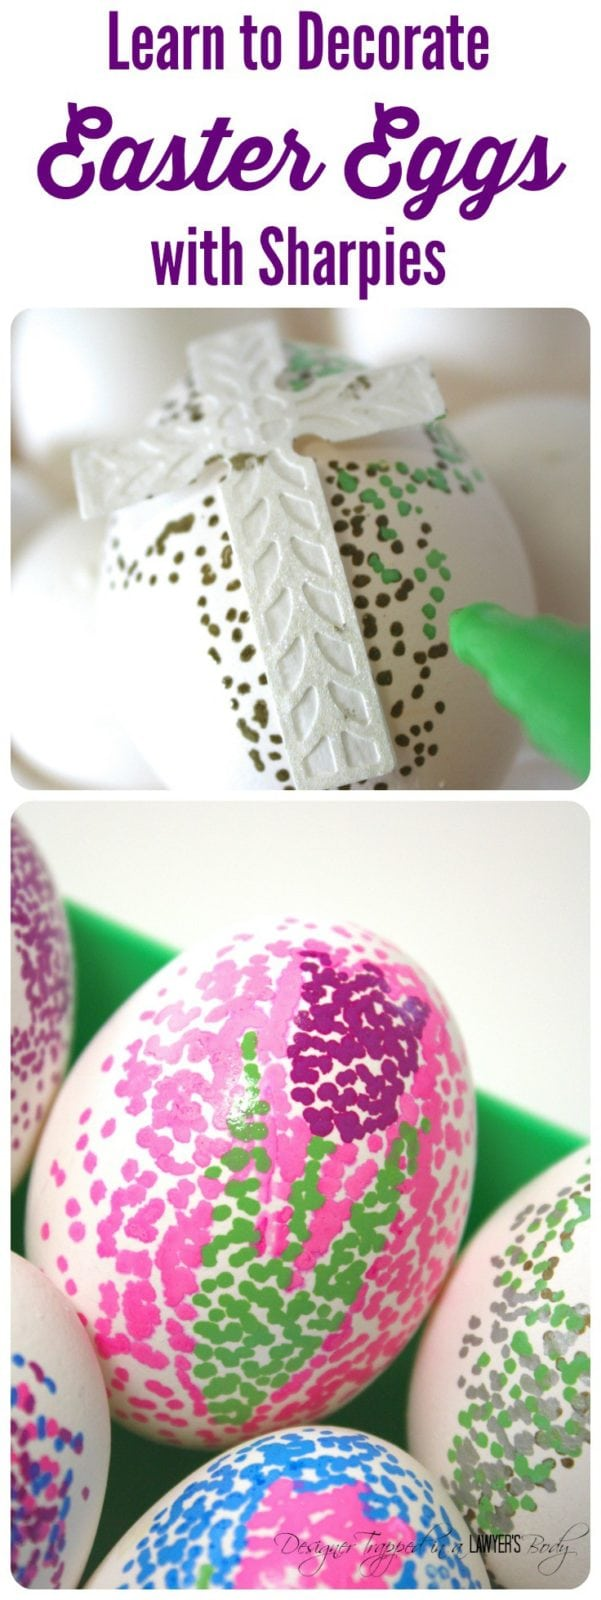 Easter egg decorating doesn't have to be complicated or messy! Learn how to make easy, dotted Sharpie Easter eggs with this simple tutorial! #eastereggs #eastereggdecorating.